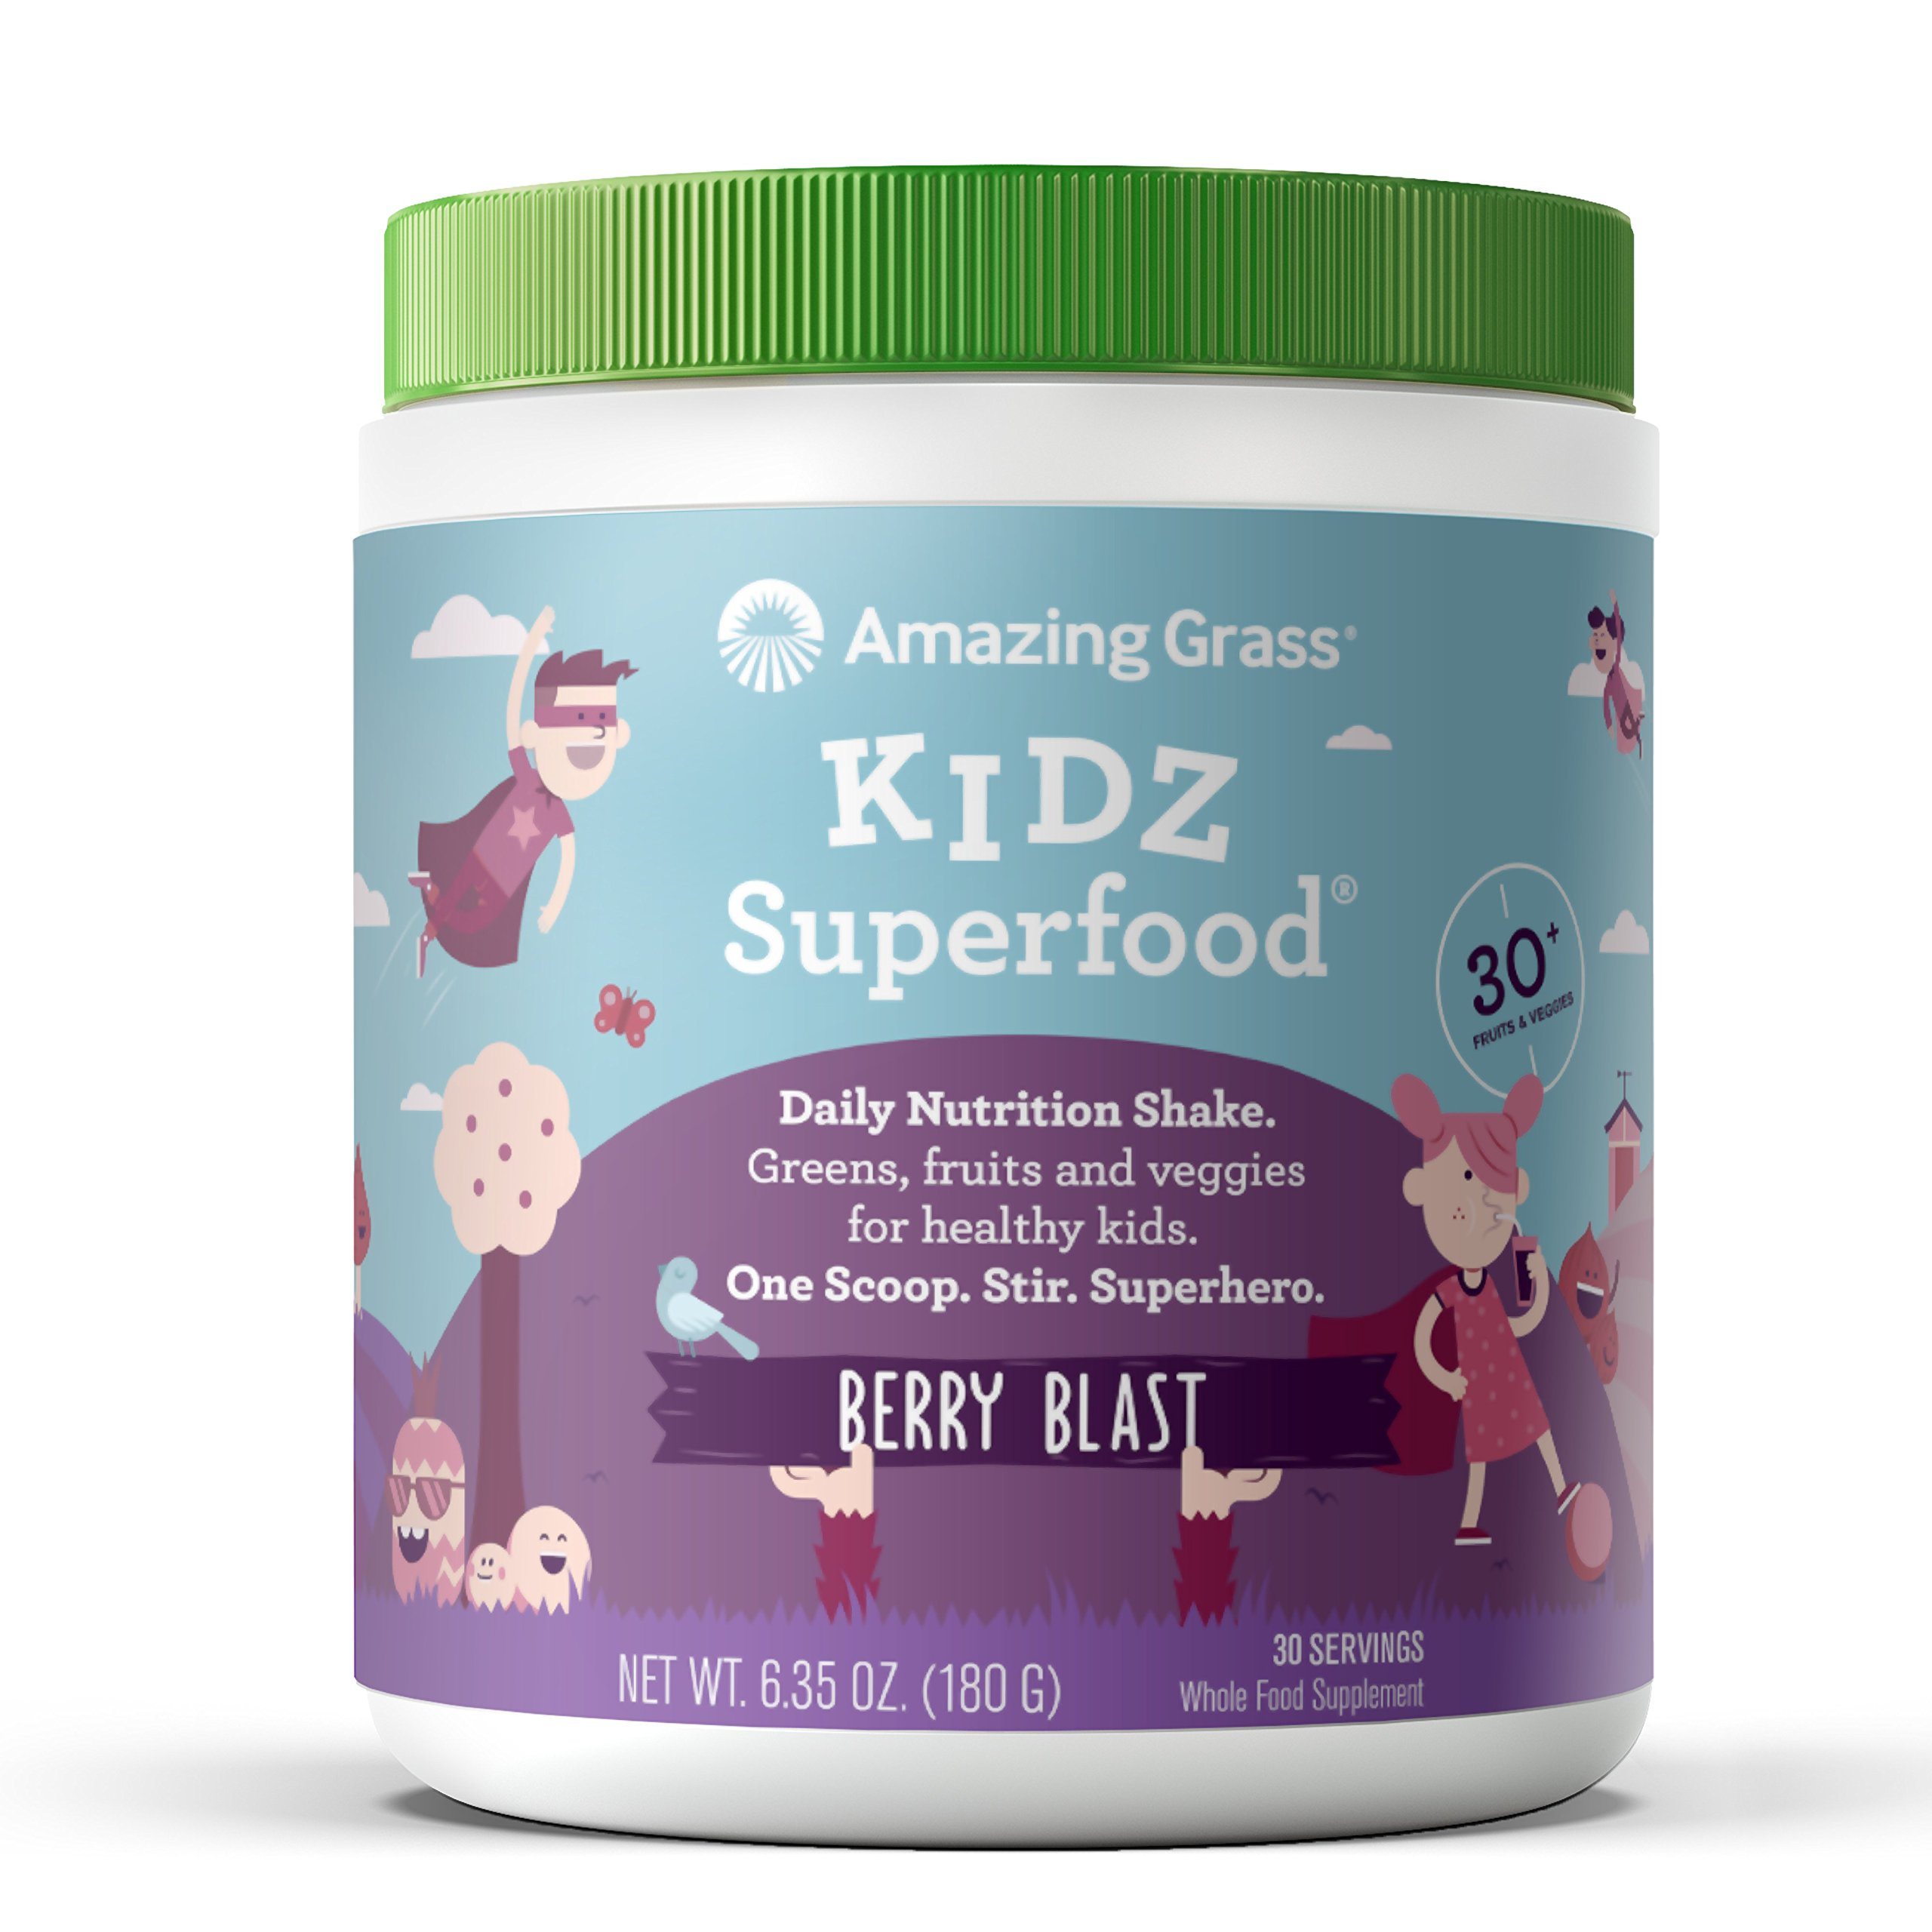 Amazing Grass, Nutritional Plant Based Kidz Superfood Powder with Greens, Veggies and Fruits, Flavor: Berry Blast, 30 Servings, vegan kids